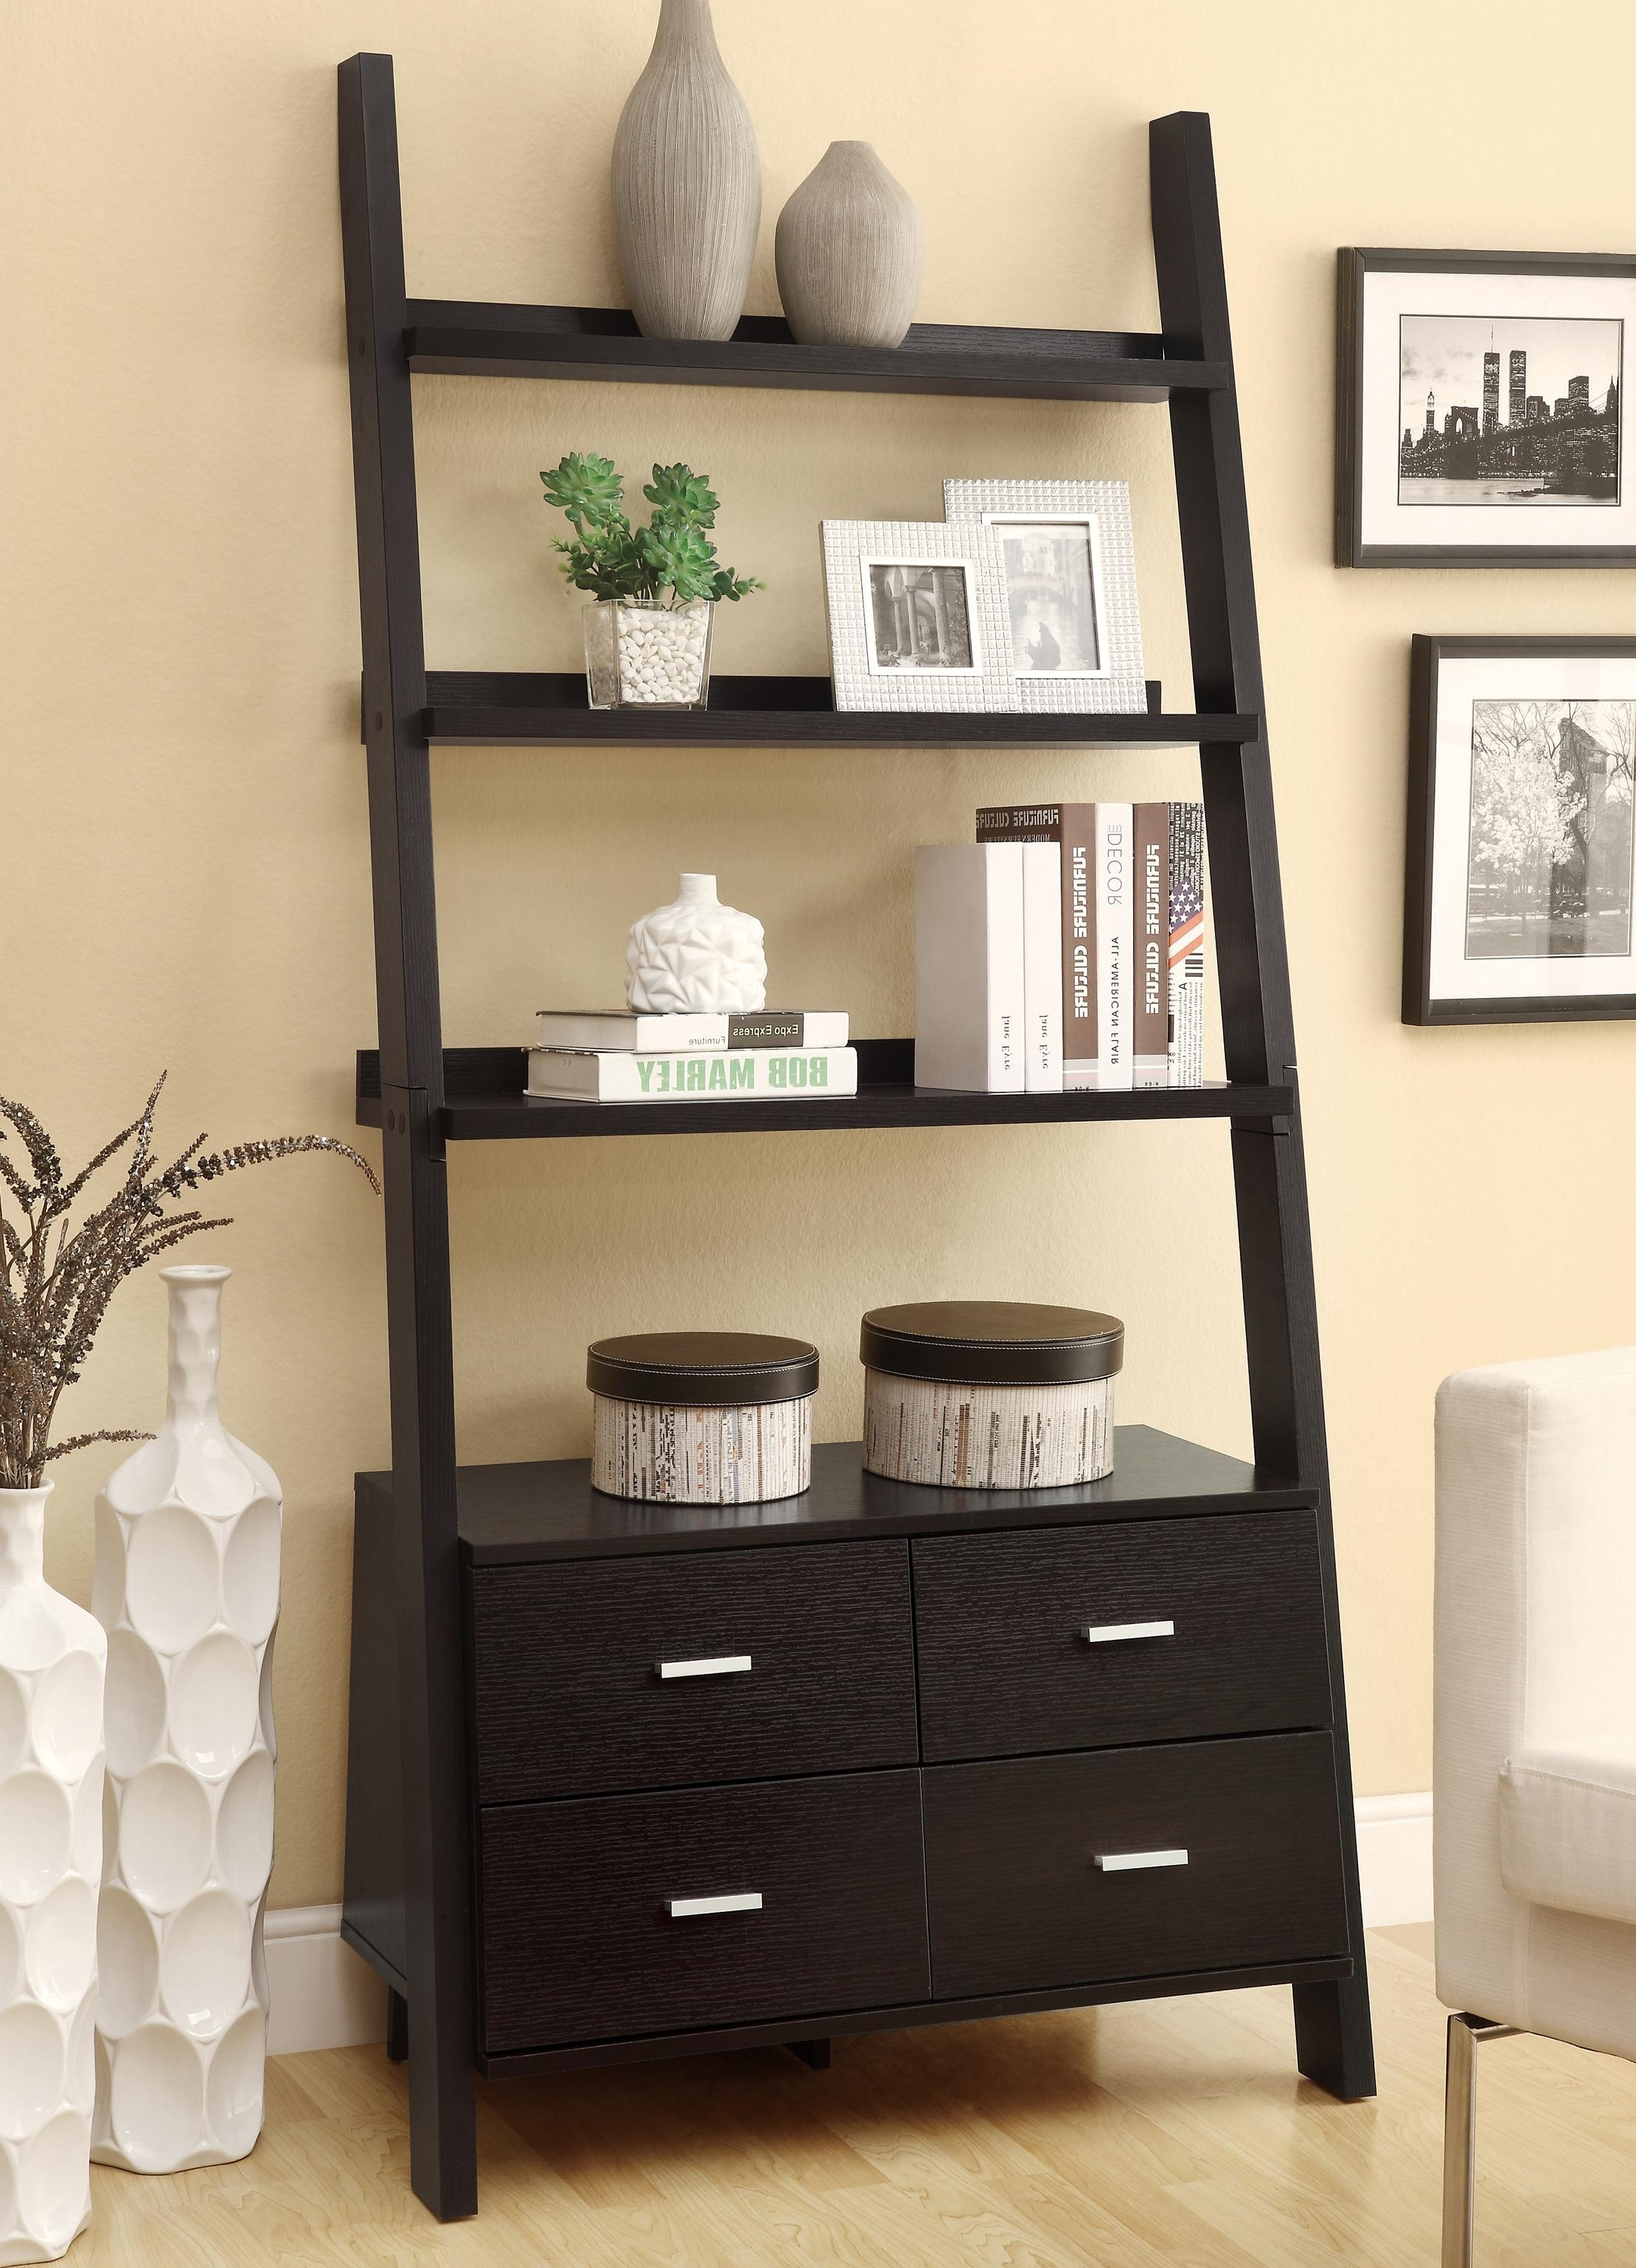 Coaster Bookcases 800319 Leaning Ladder Bookshelf With 2 Drawers With Preferred Leaning Ladder Bookcases (View 3 of 15)